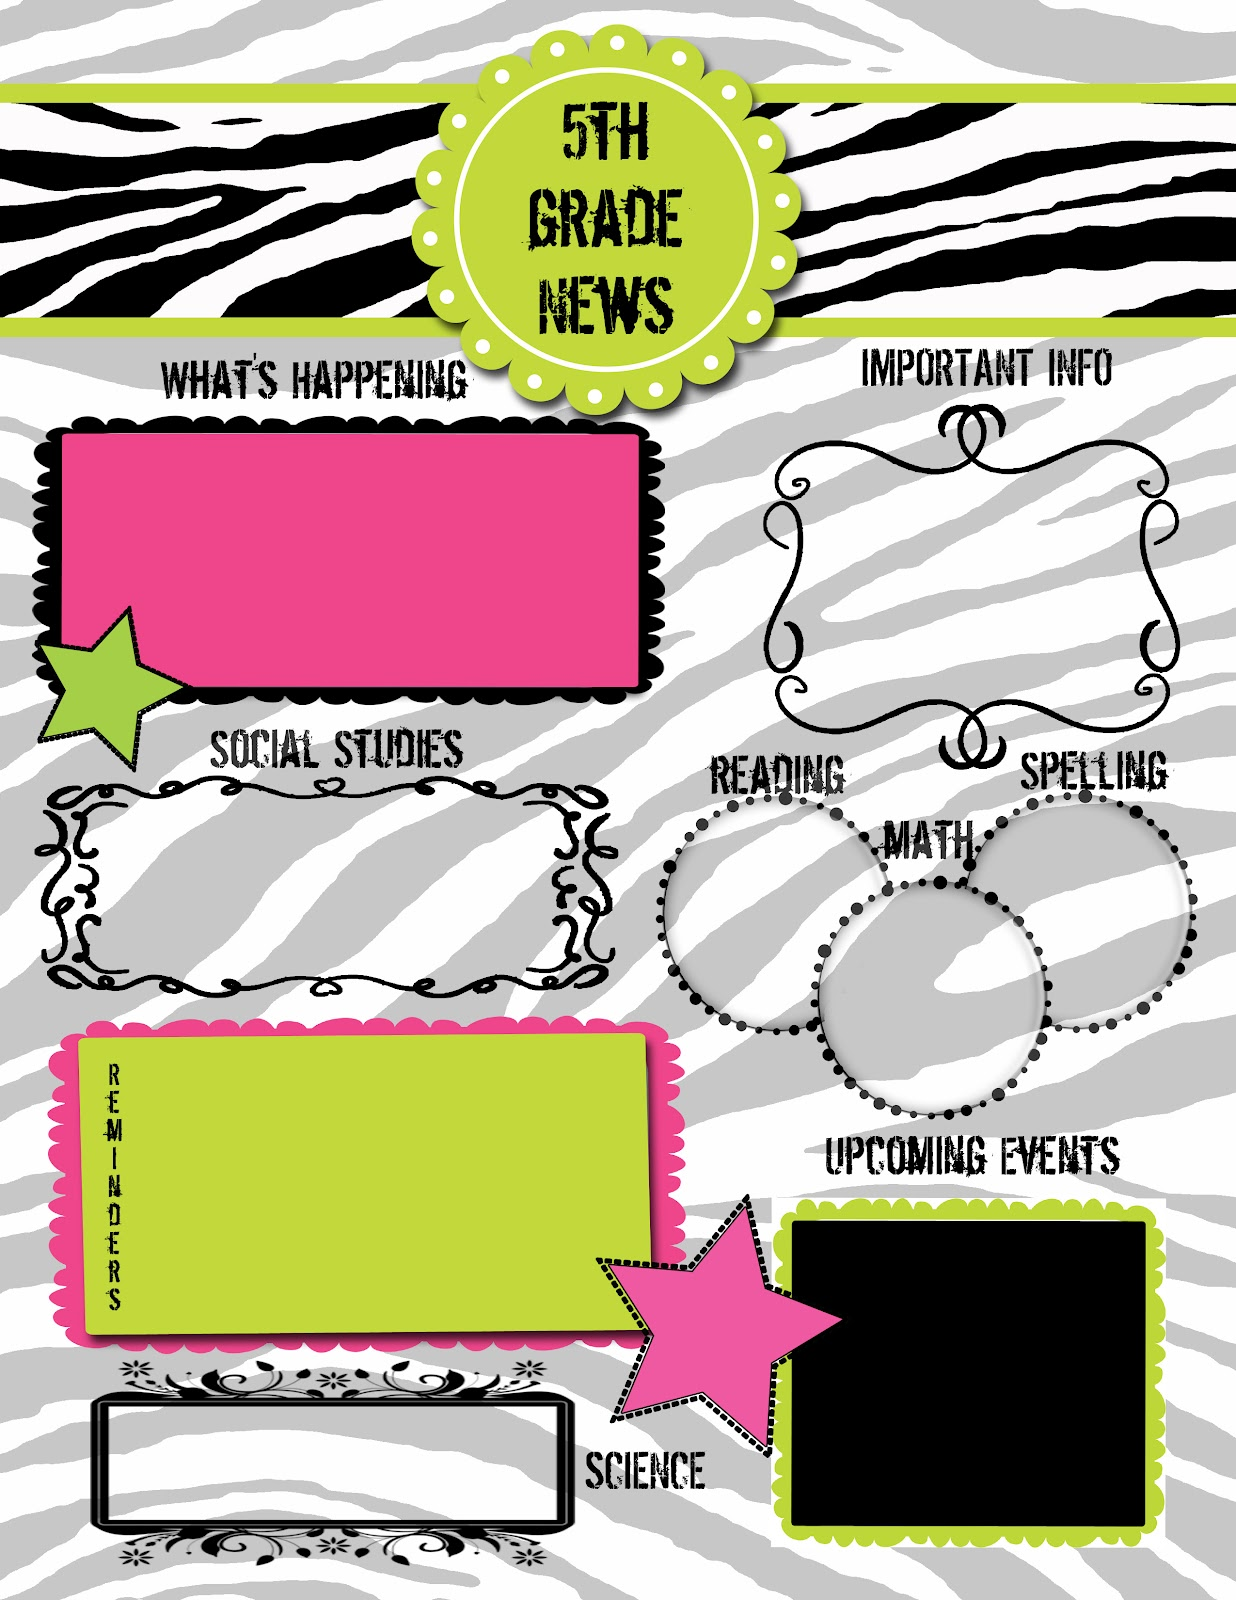 5th grade newsletter template - krazy 4 writing